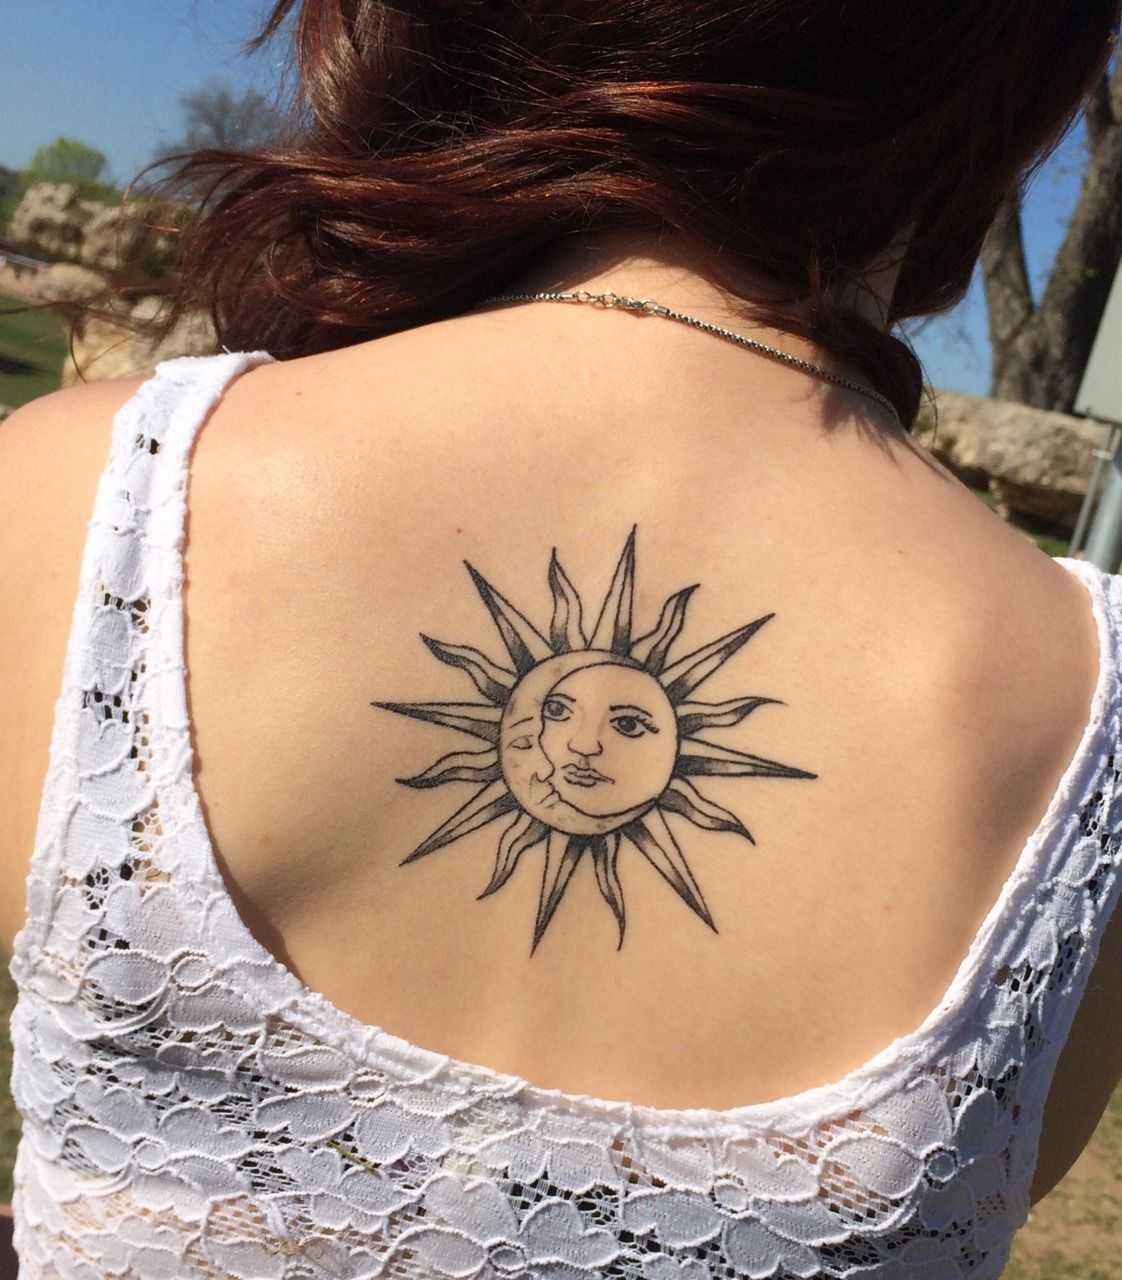 Submit Your Tattoo Here Moon tattoo designs